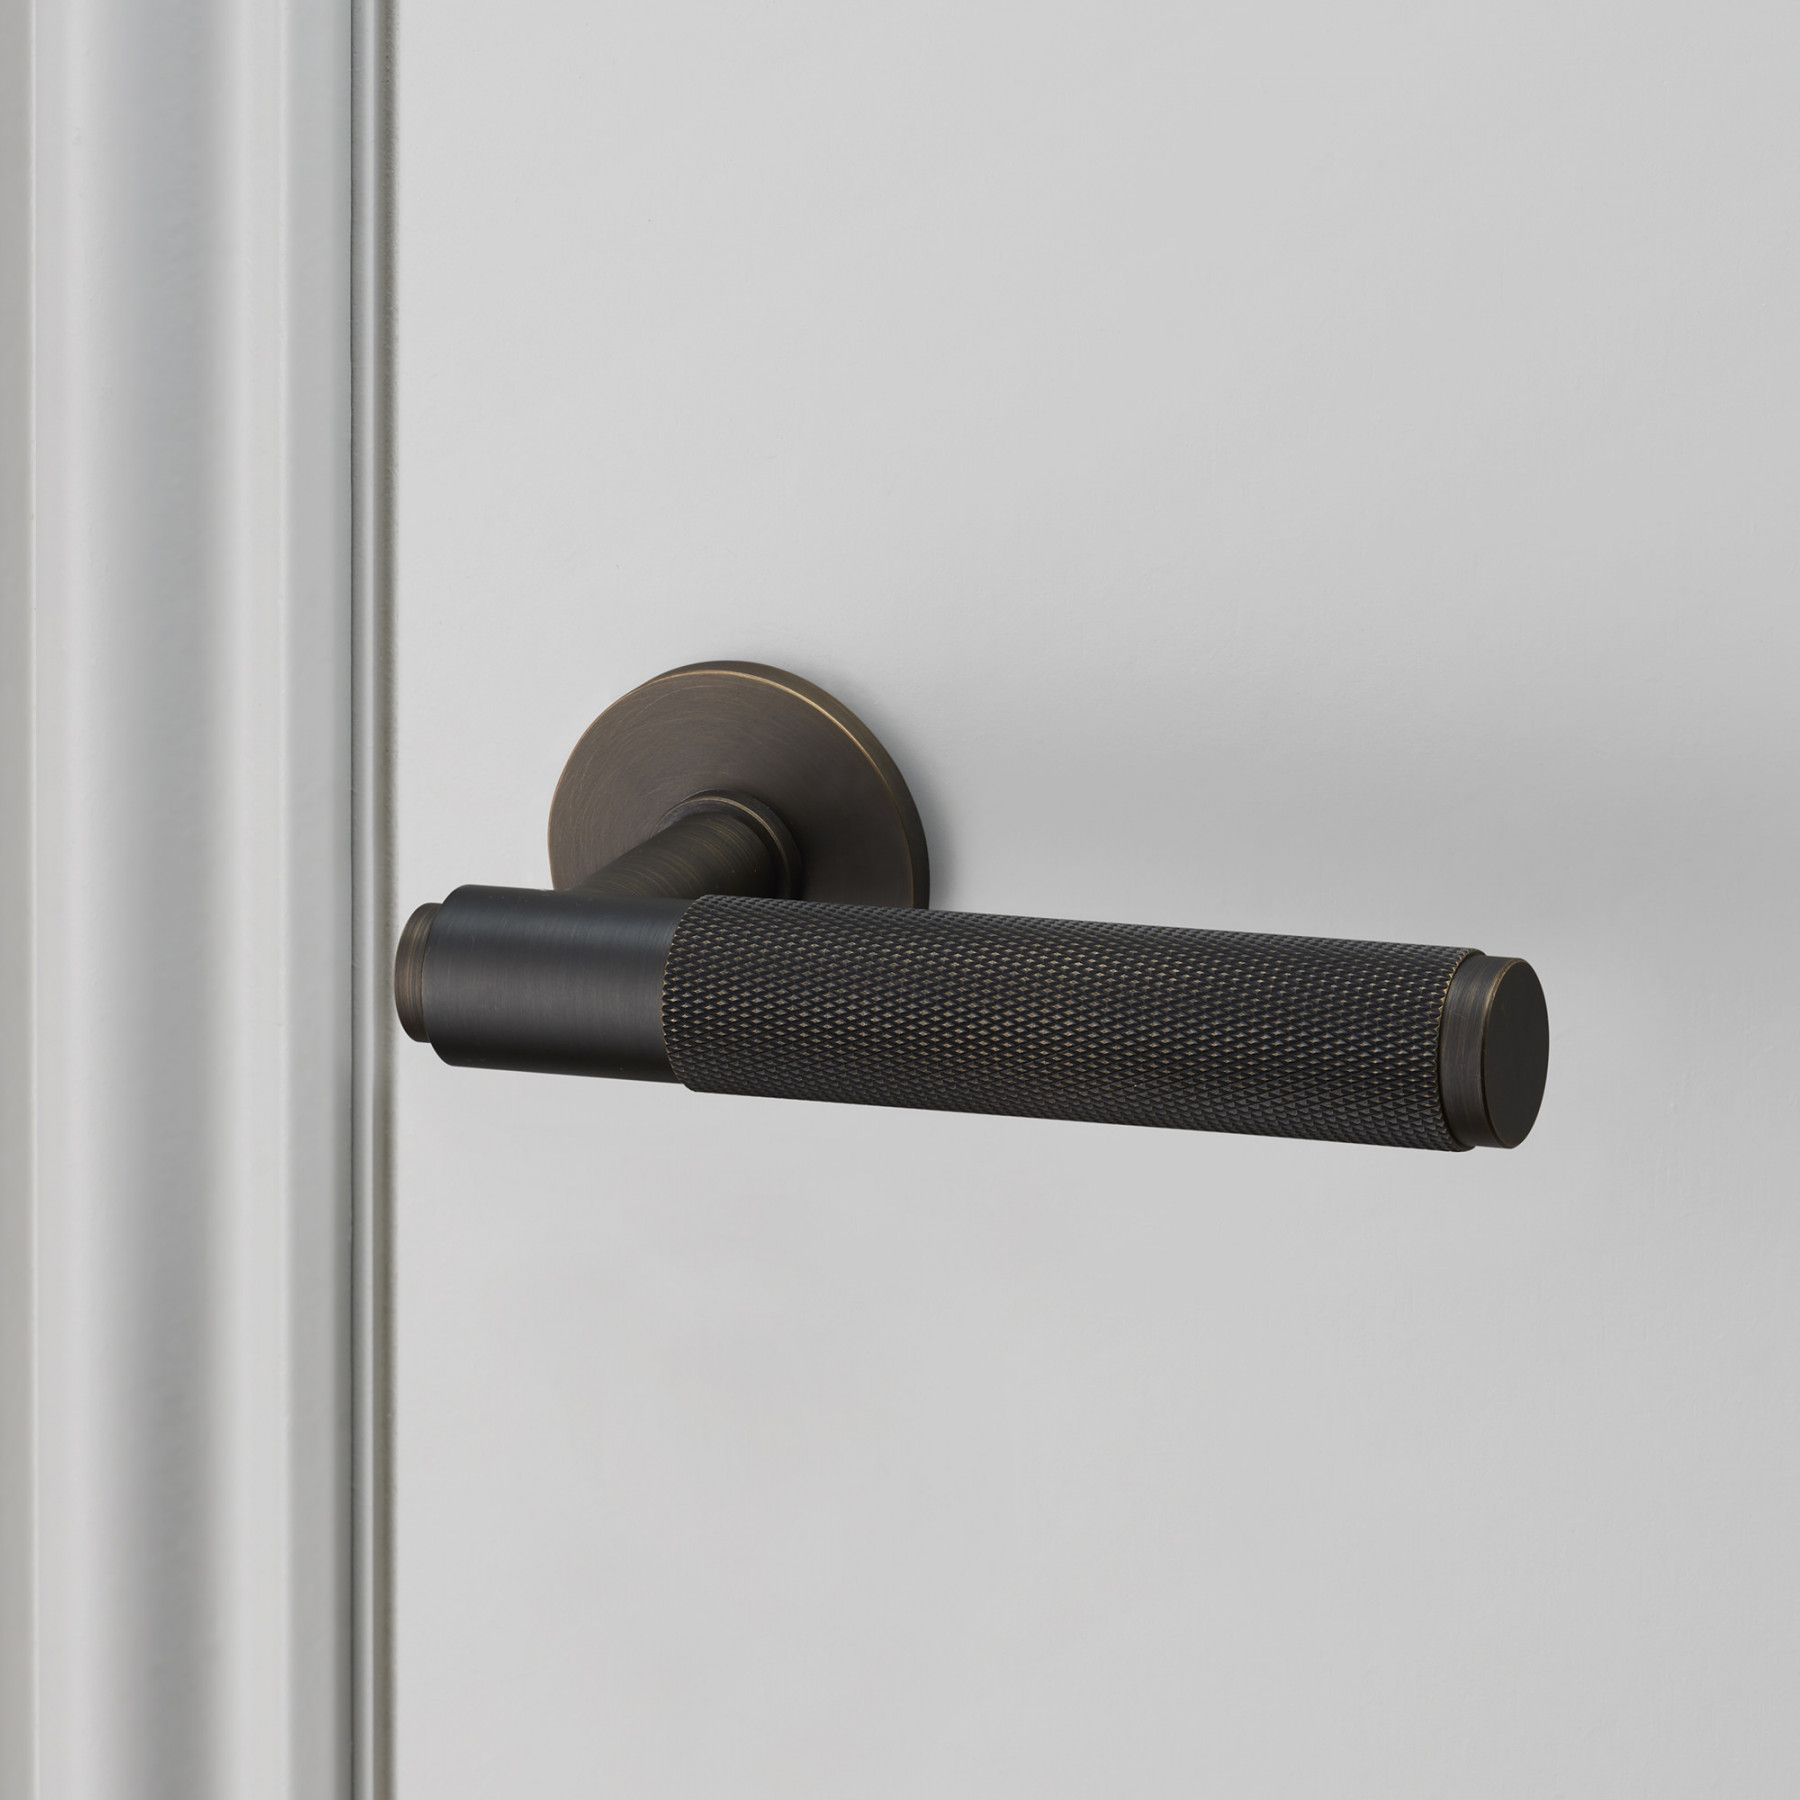 An indoor lever handle made from solid metal, a solid bar with ...